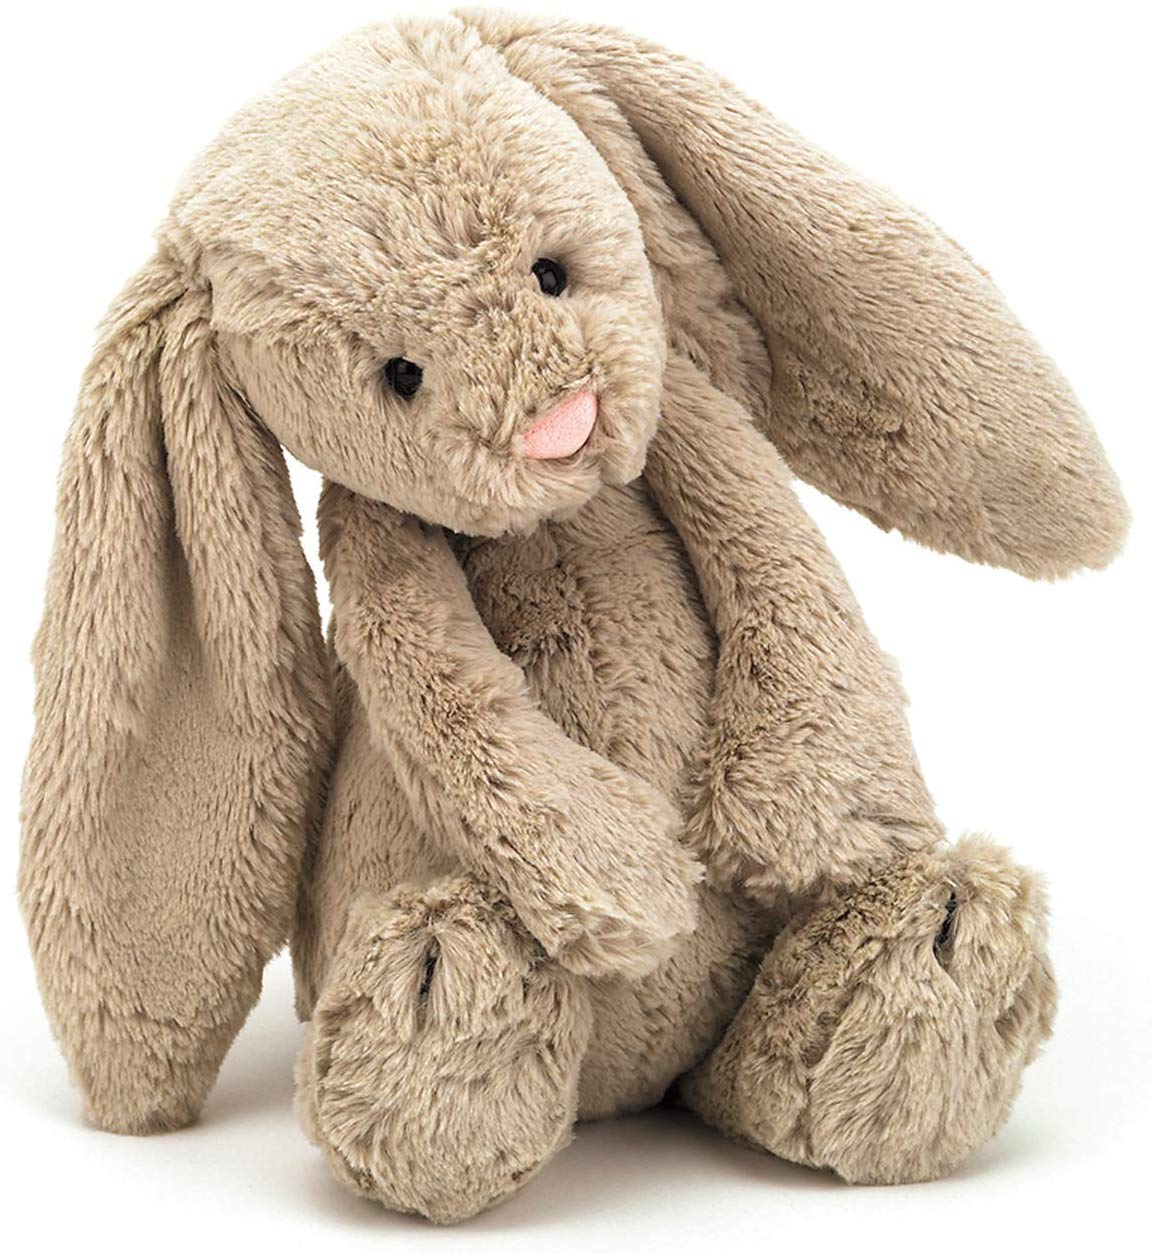 Jellycat Bunny Stuffed Animal, 12-Inch